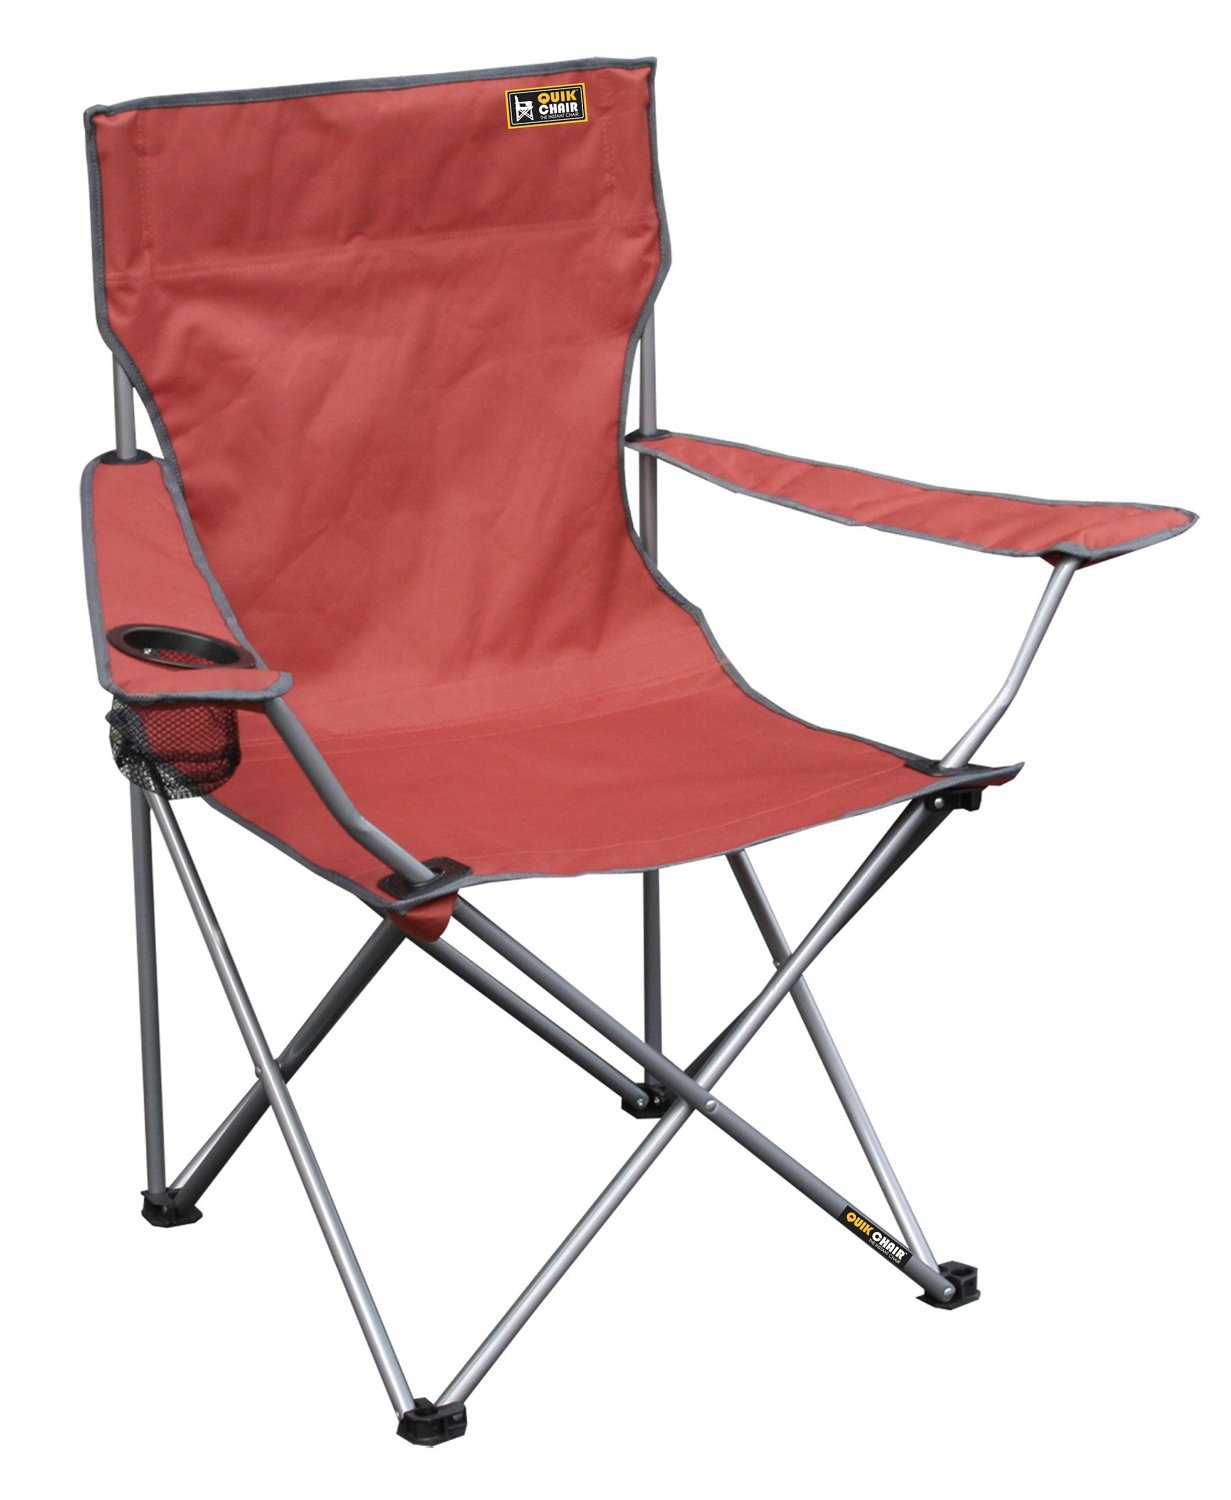 Quik Shade Folding Camping Chair Academy